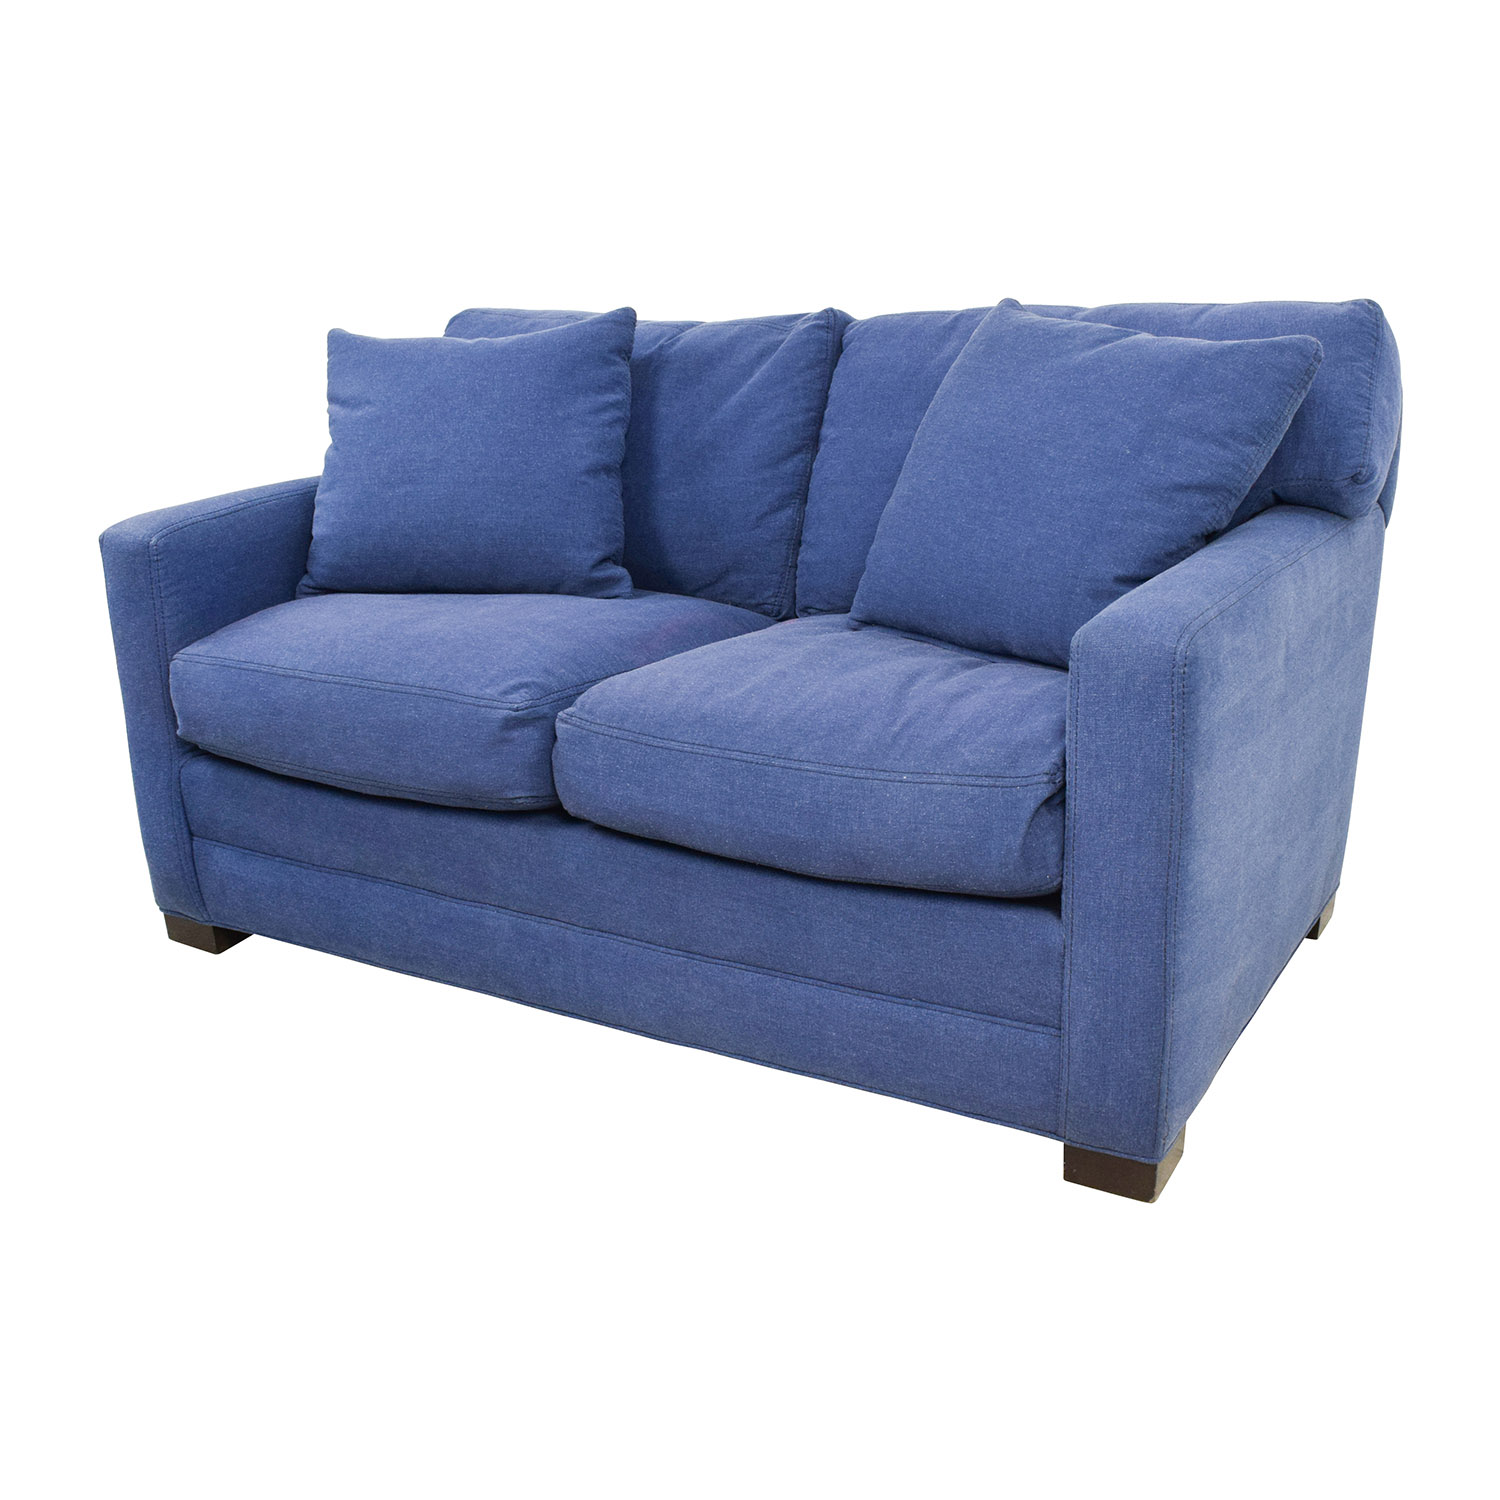 79 off lee industries lee industries denim blue loveseat sofas Couches and loveseats